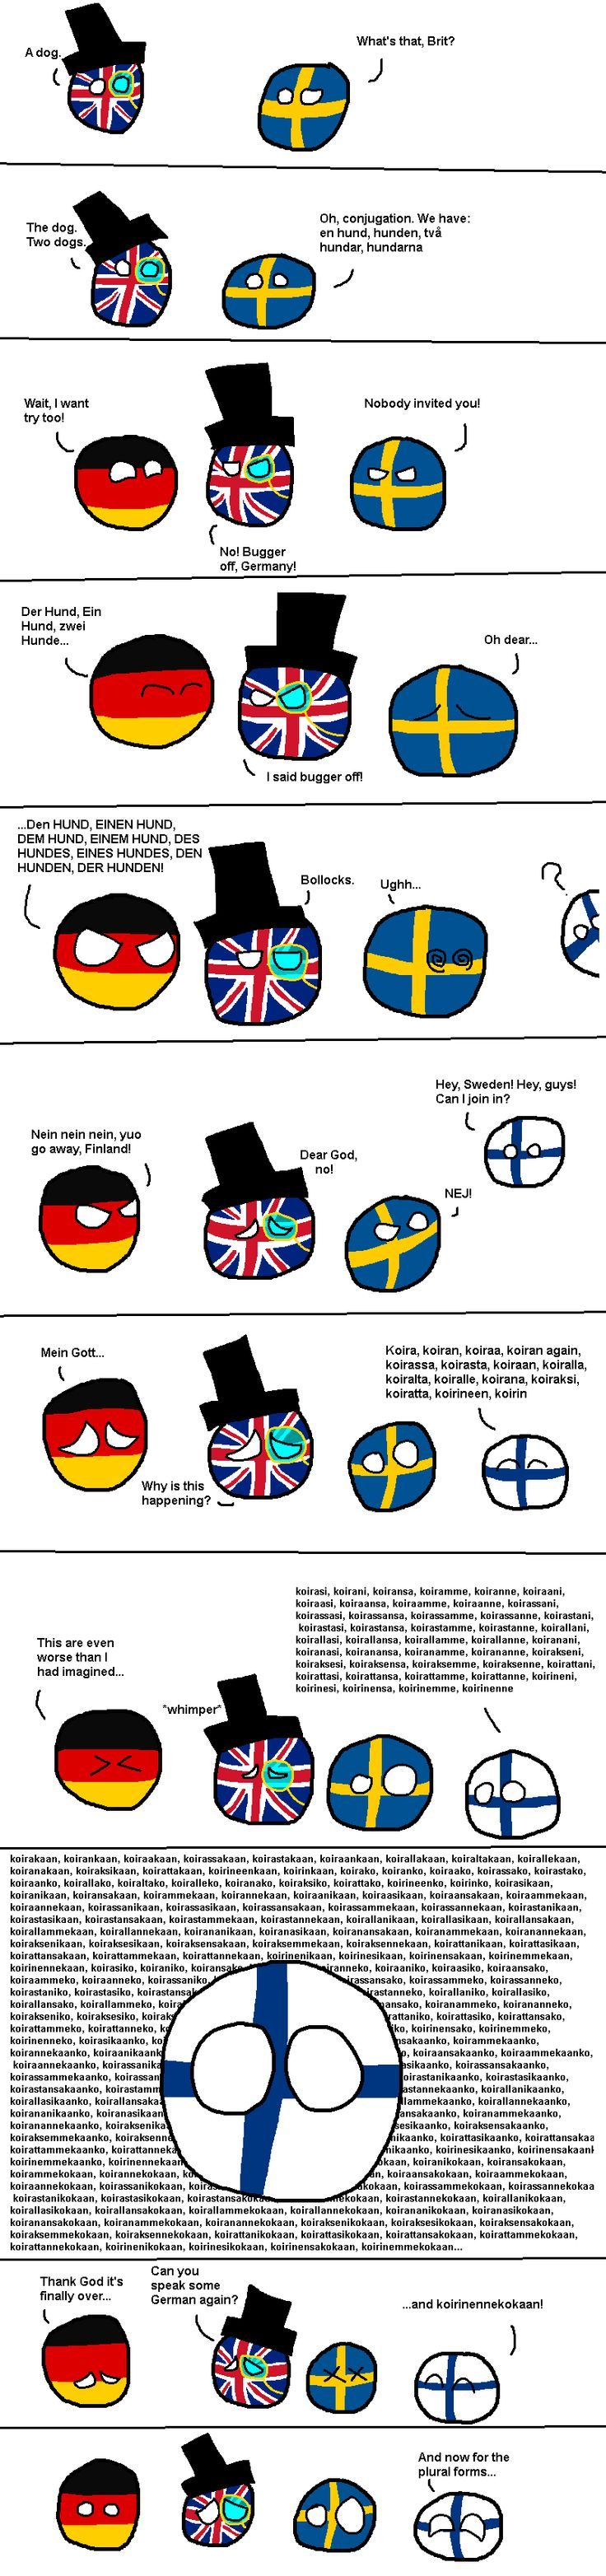 Damn Finland, get your shit together.